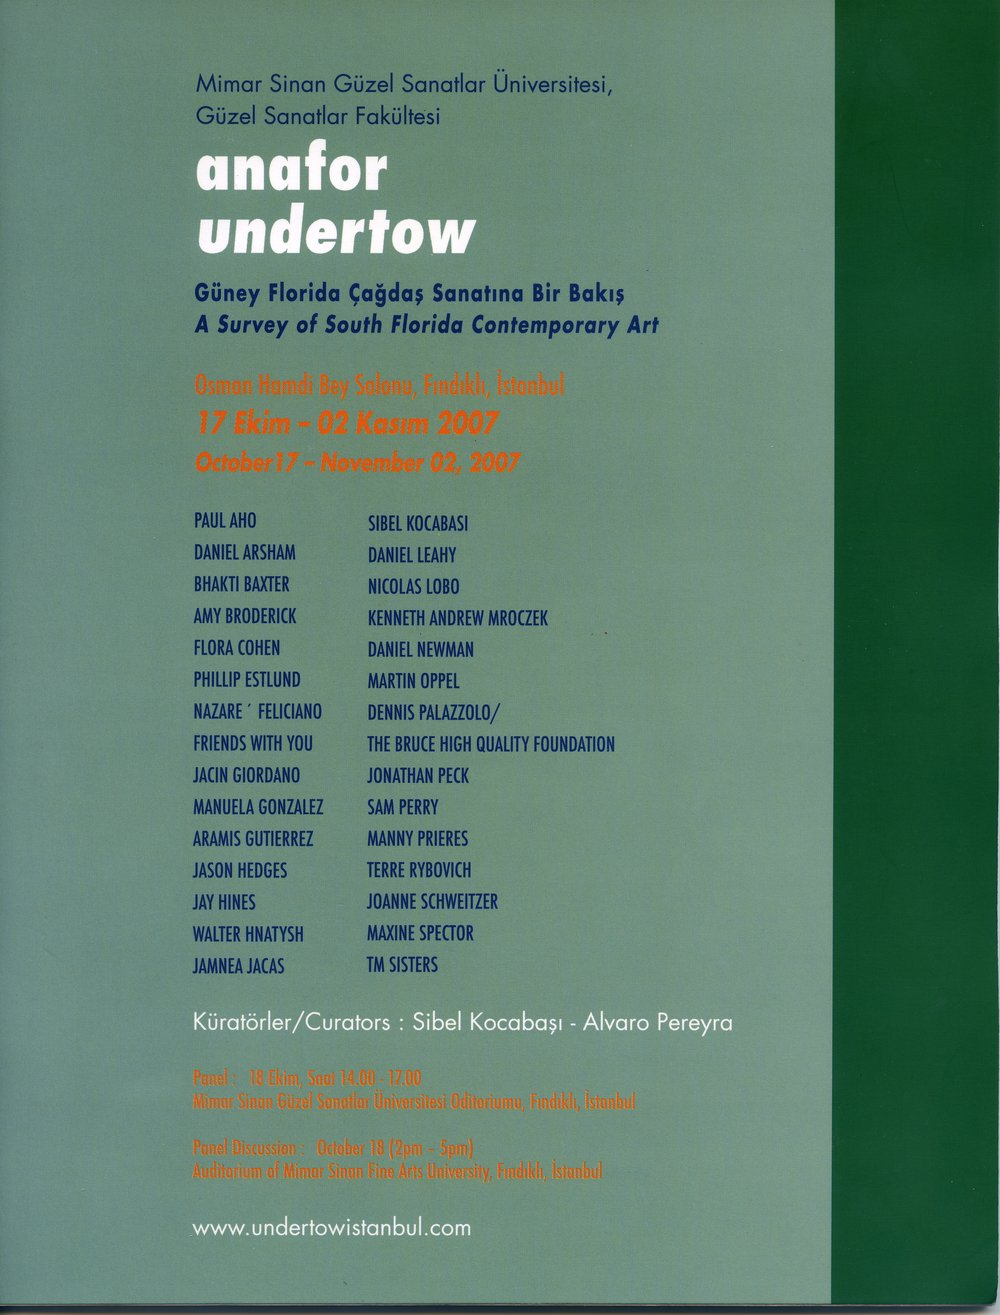 Undertow    Istanbul, 2007  Curated by Sibel Kocabasi  Catalog of South Florida Artists curated exhibition in Istanbul